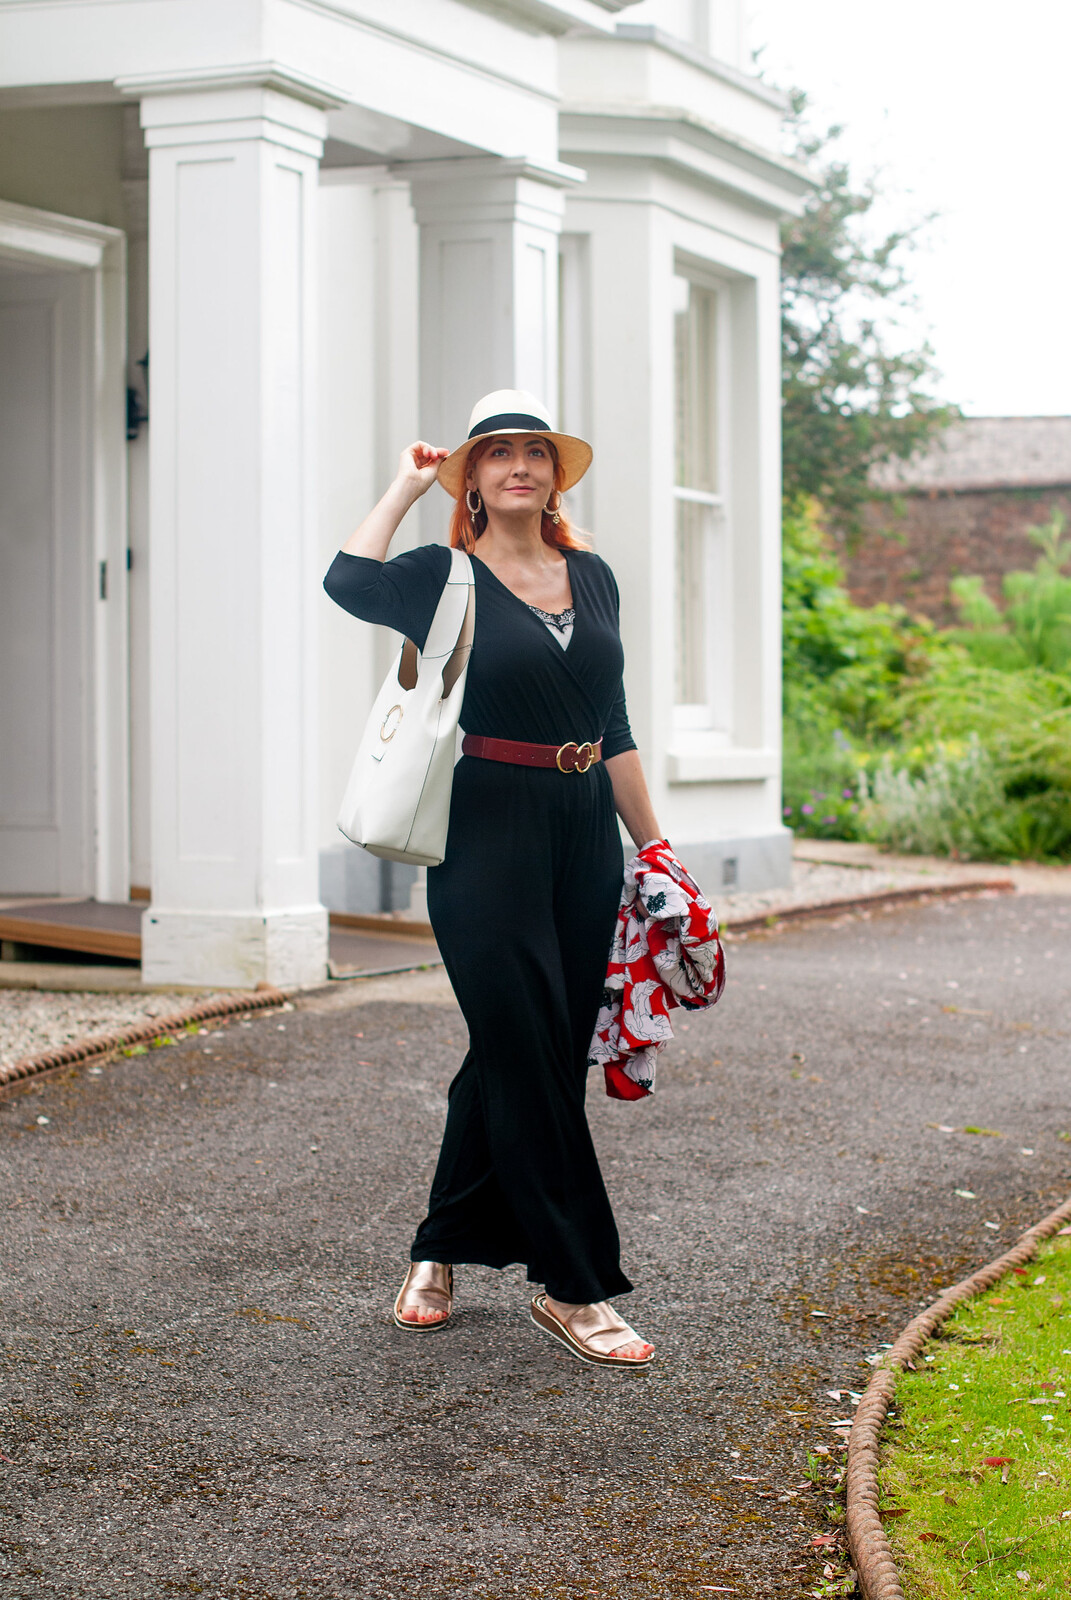 The Ever-Versatile Black Jumpsuit - Perfect for Summer | Not Dressed As Lamb, over 40 style